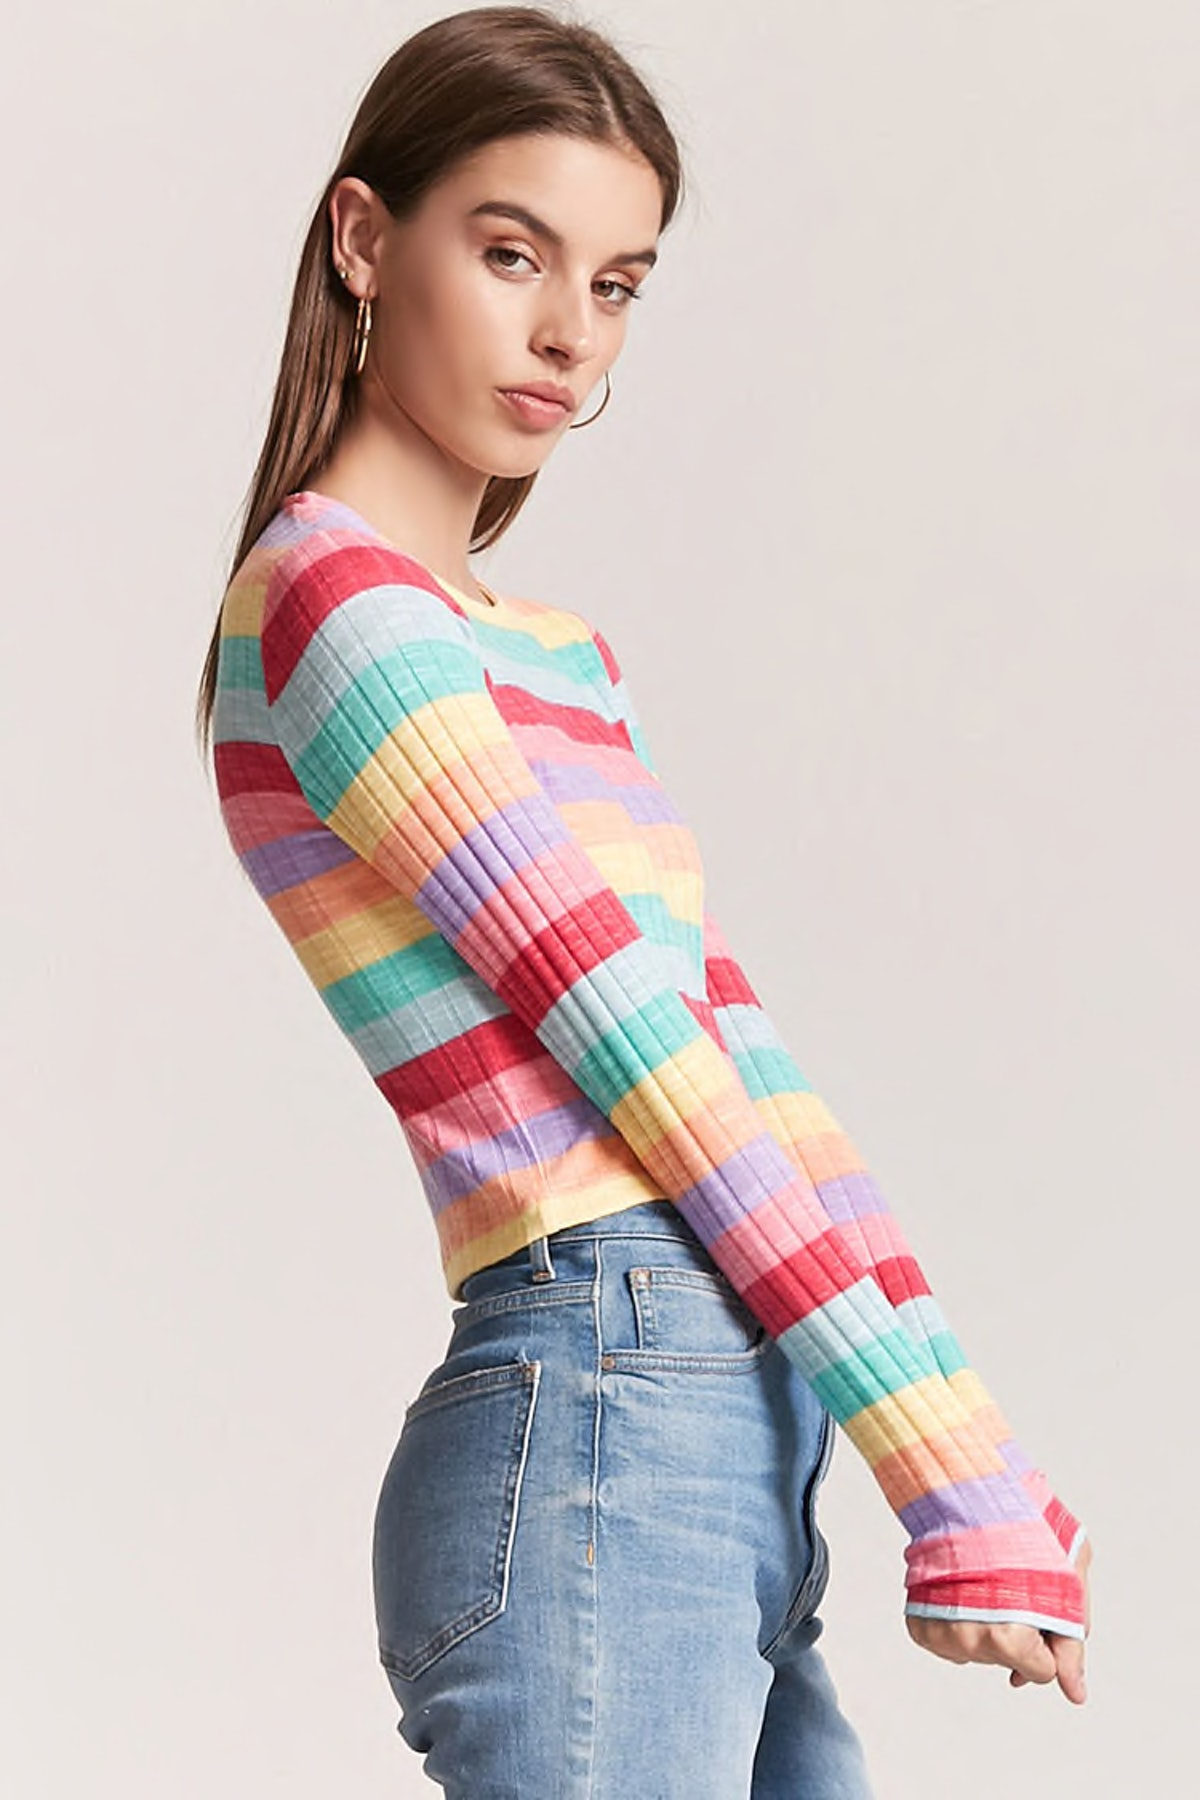 Striped Crop Top, $13, Forever 21